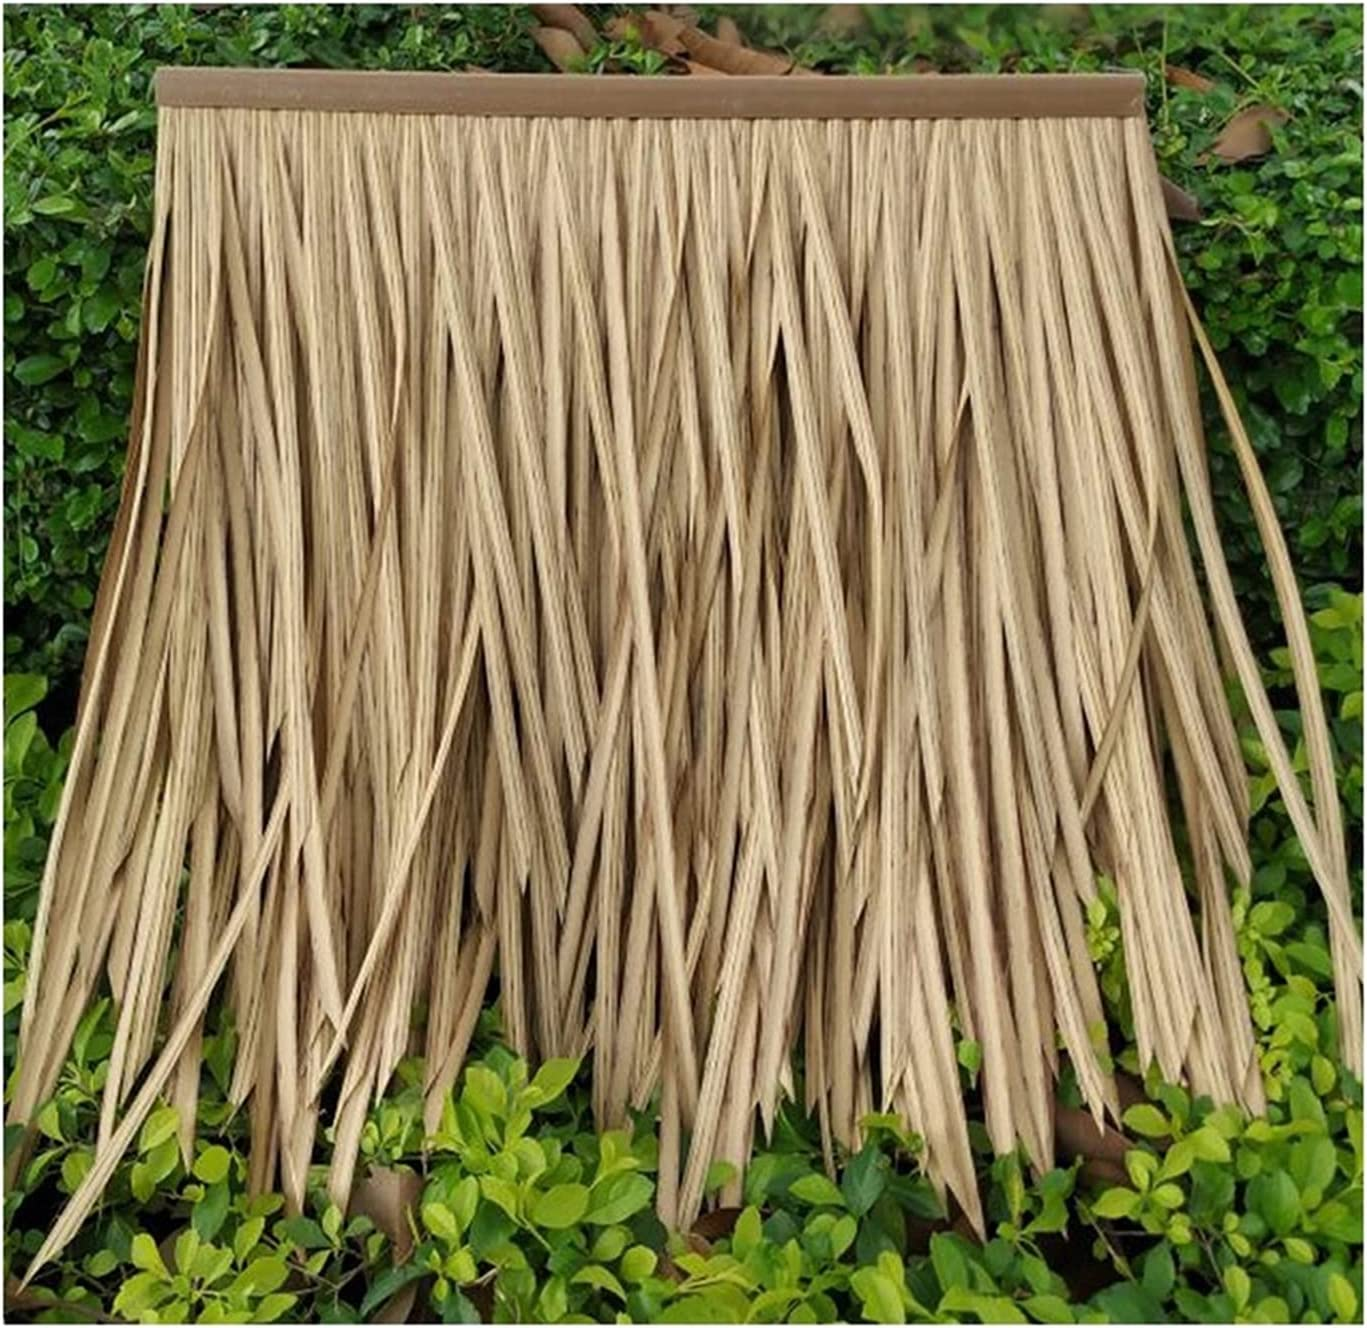 PE Environmental Protection Fake Straw Bargain sale High Density T Our shop most popular Simulation